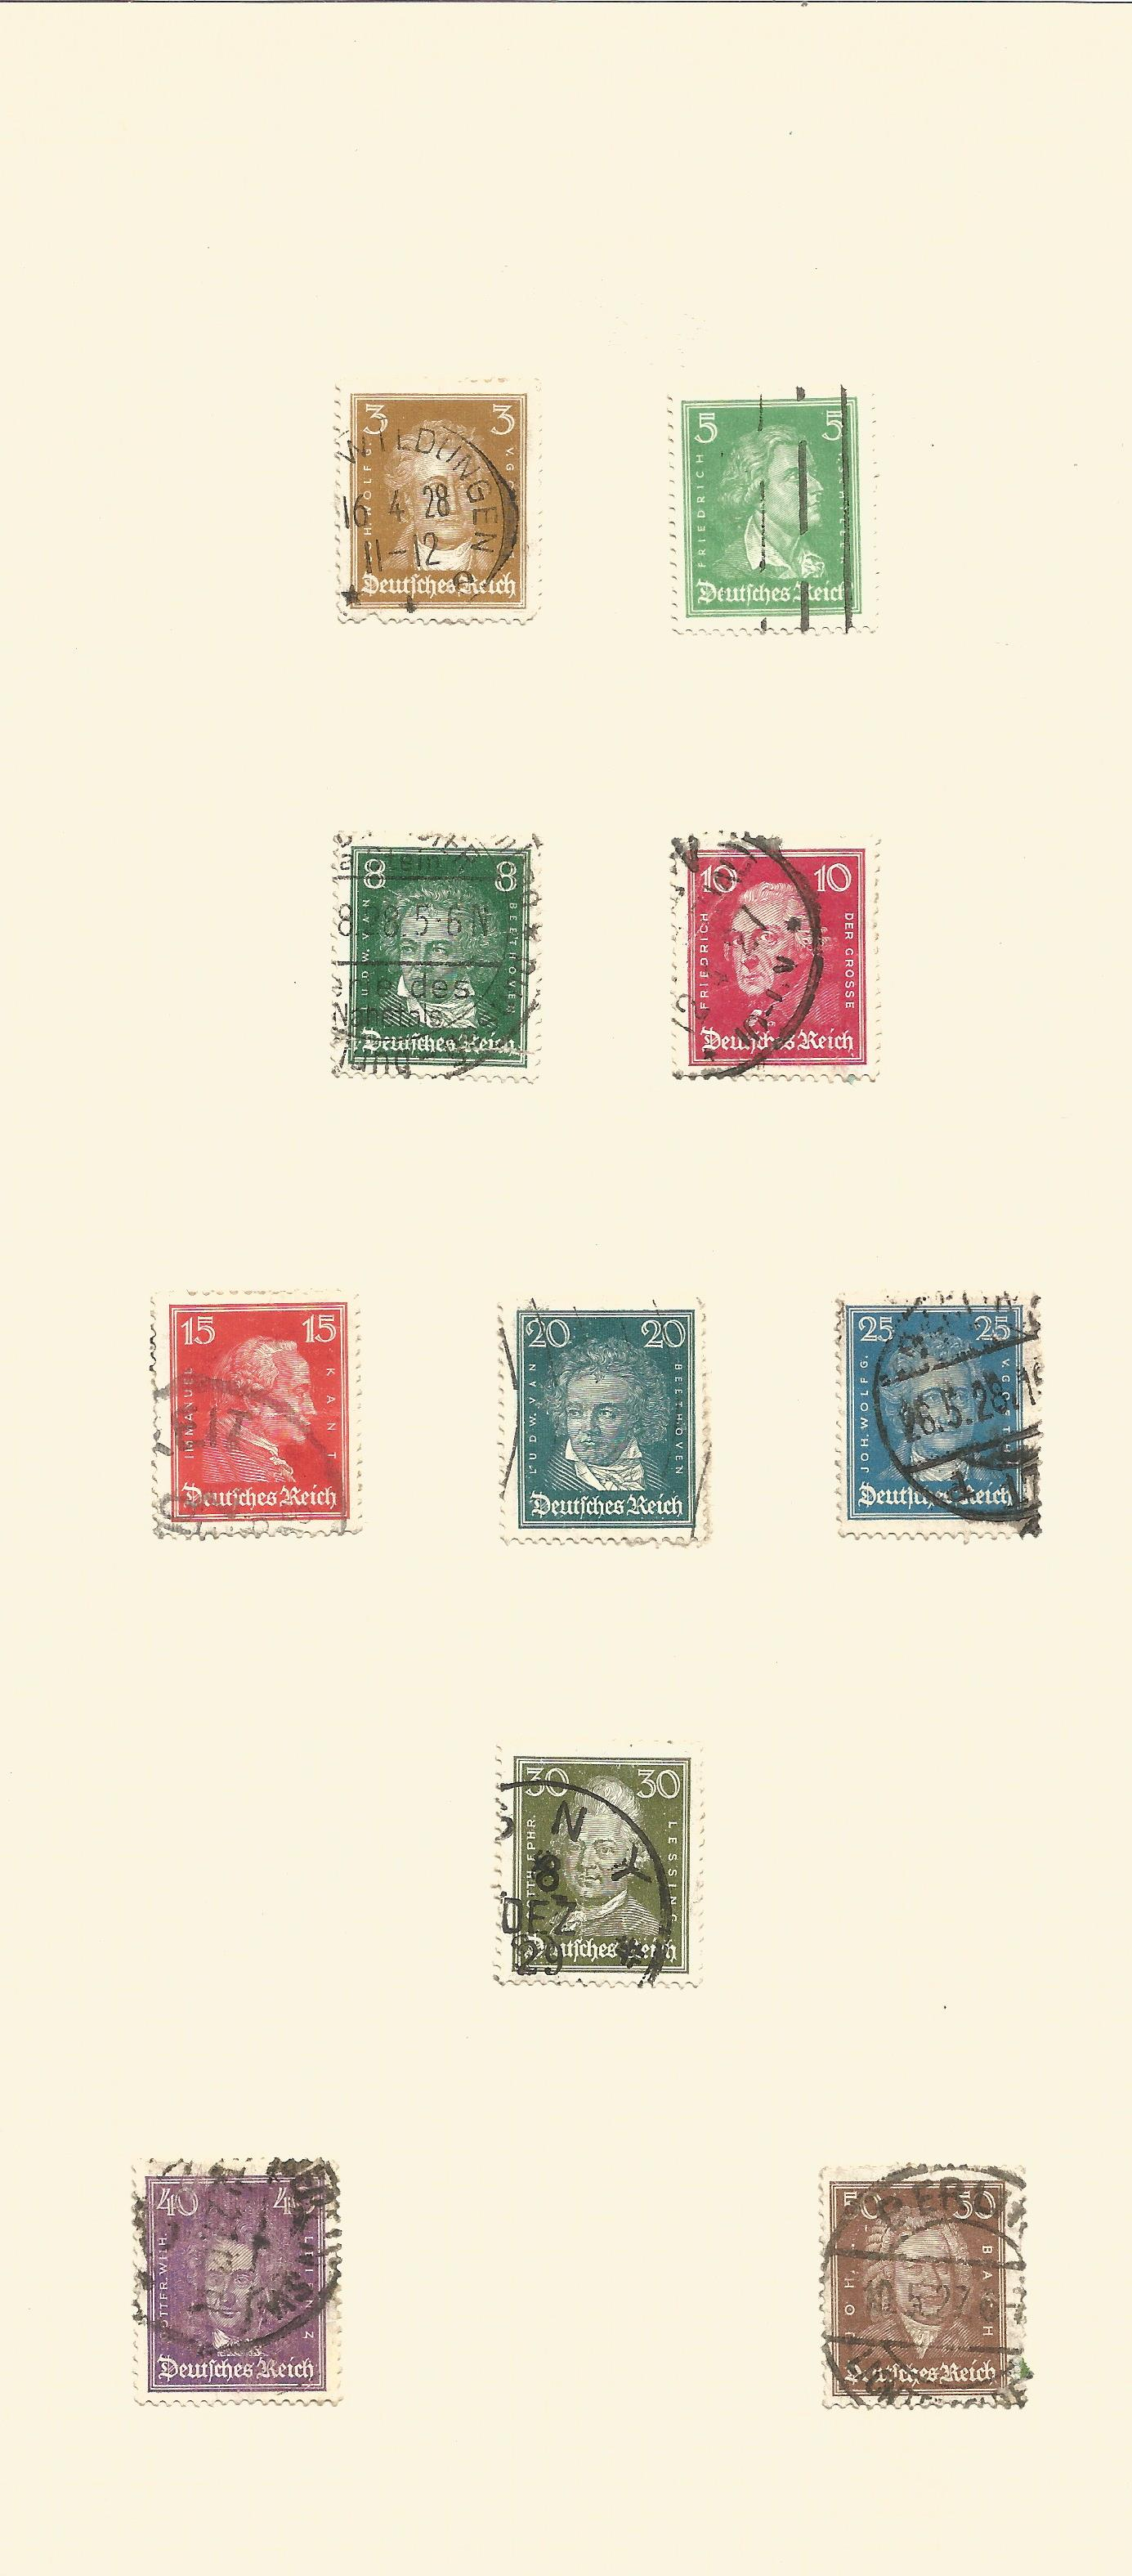 1920/1936 German stamps on 10 album pages. Good condition. We combine postage on multiple winning